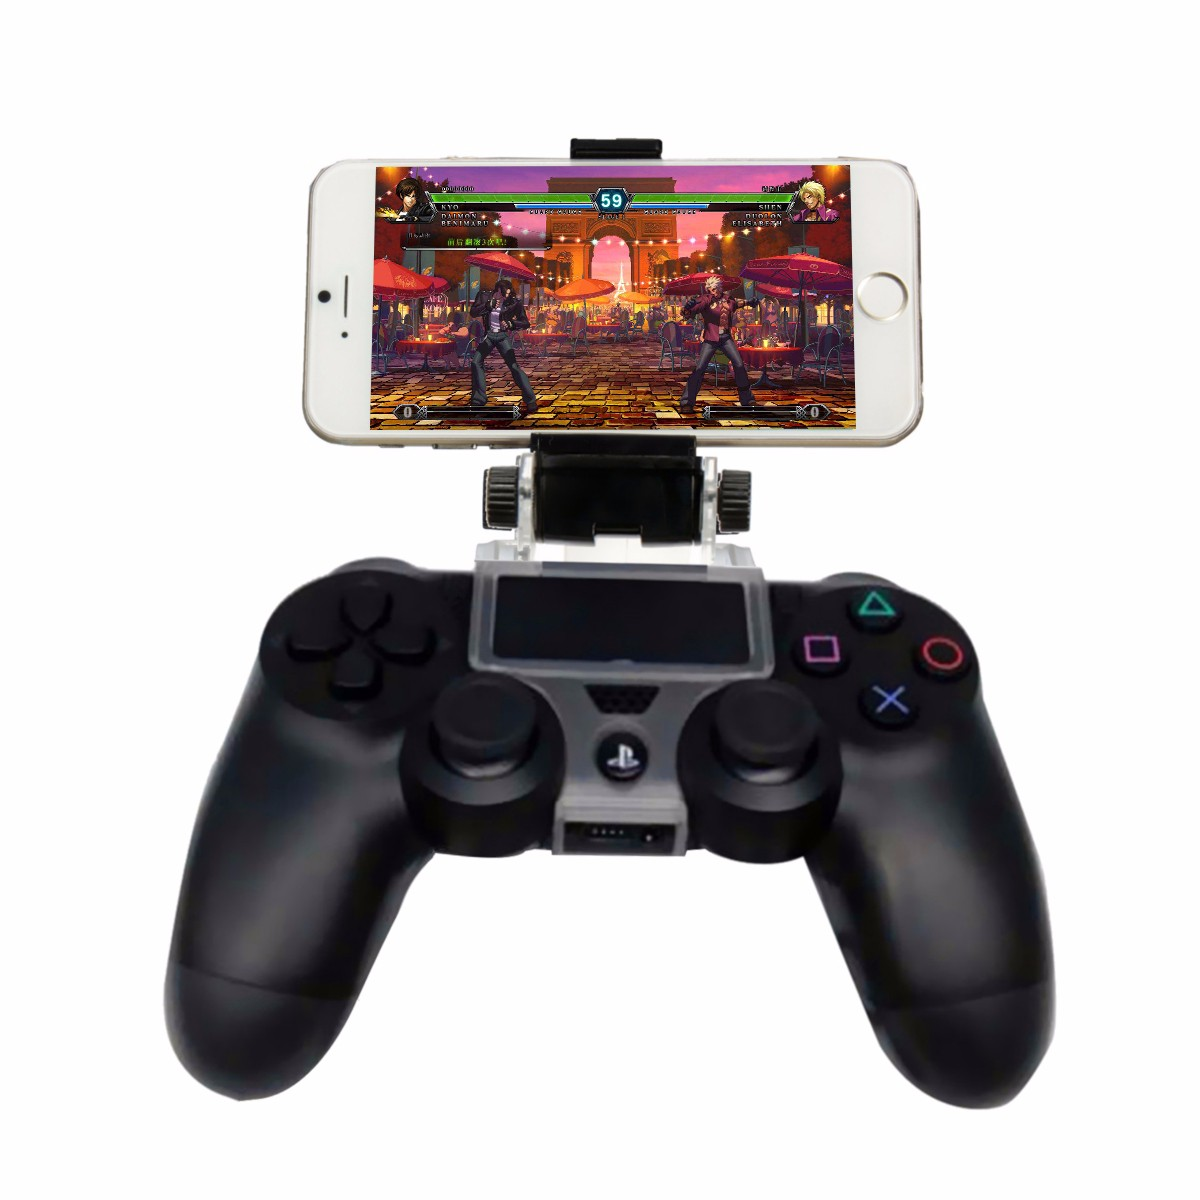 how to use my phone as a ps4 controller